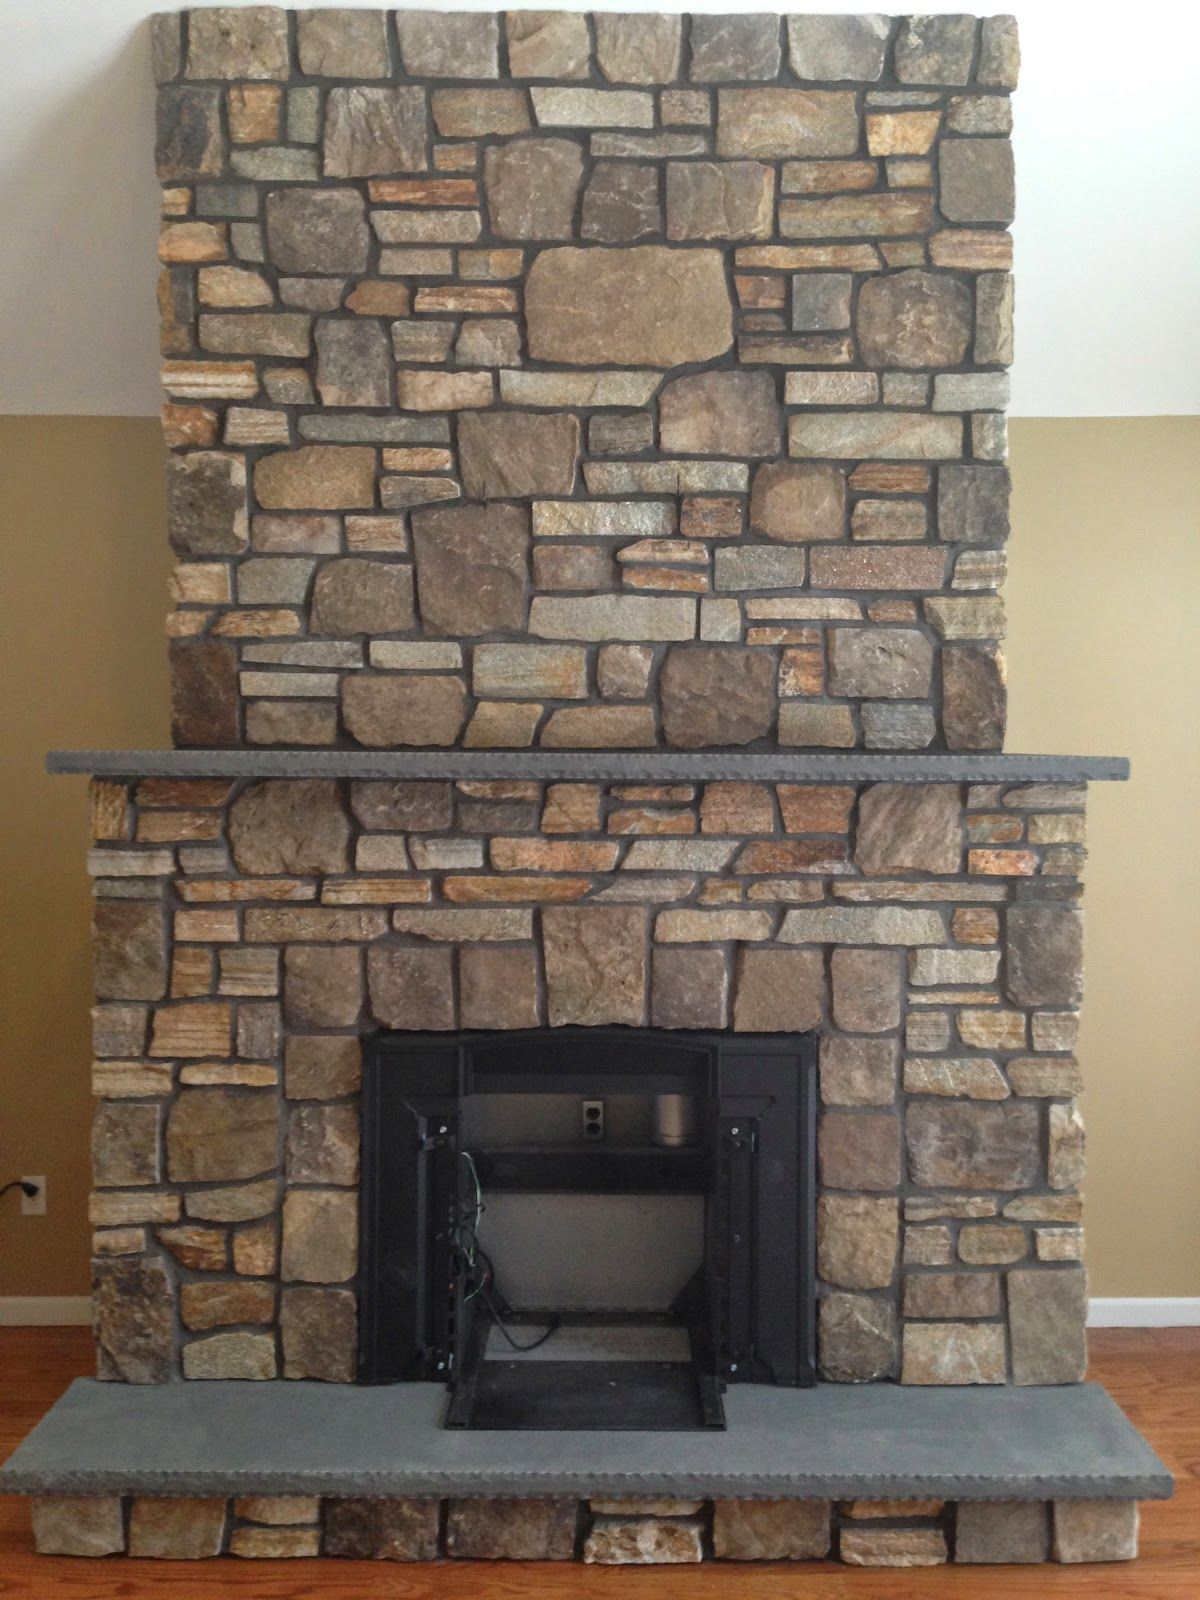 Image Result For Grouting Stone Fireplace Build A Fireplace Reface Fireplace Stone Fireplace